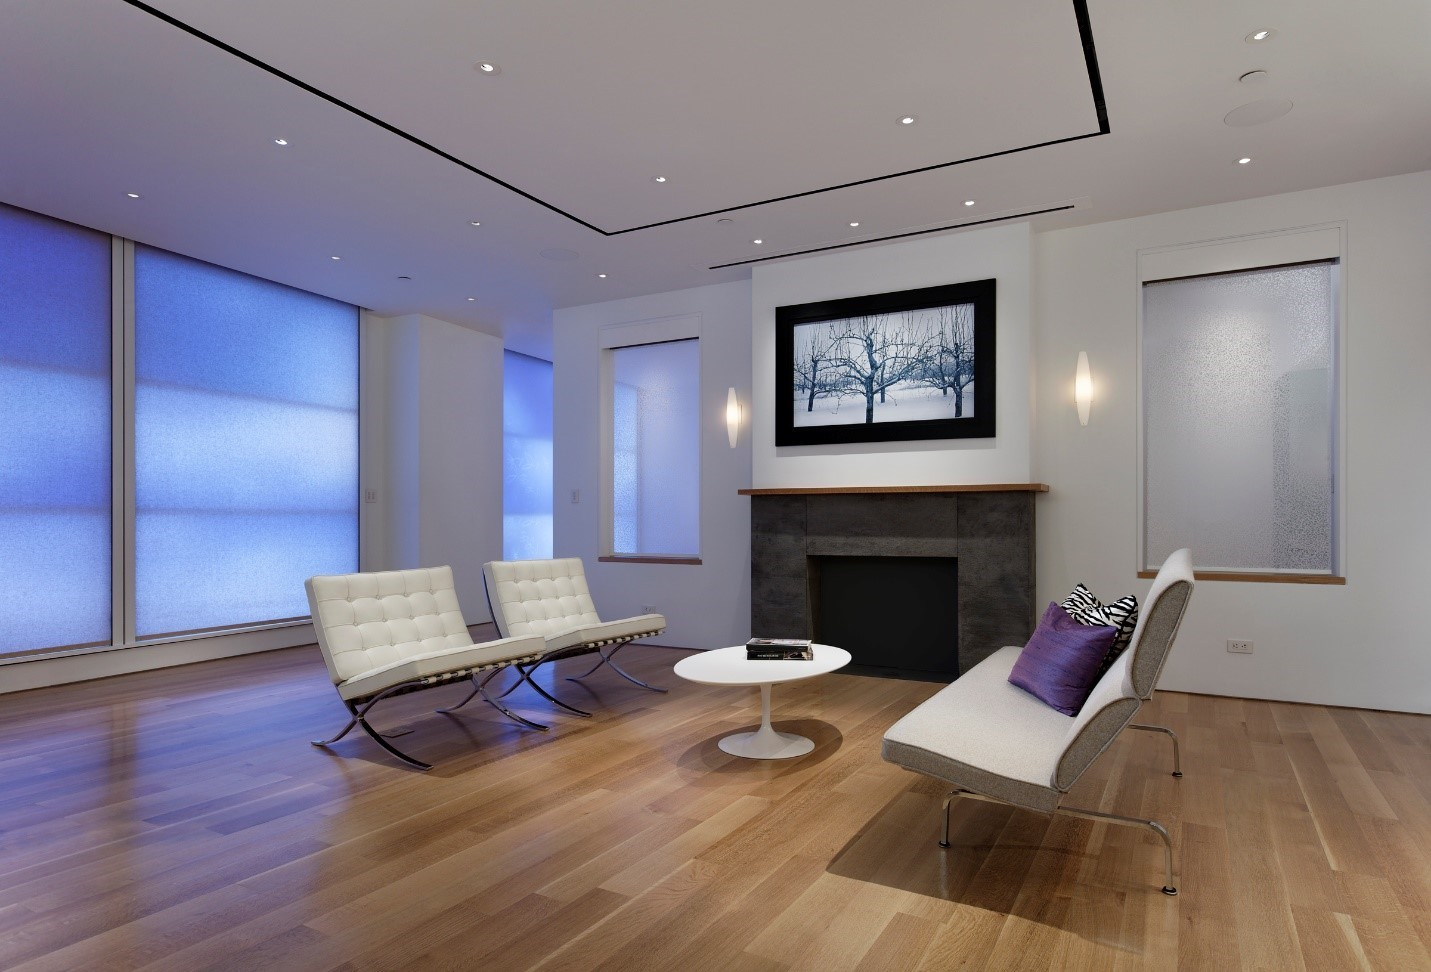 3 Reasons Why Home Lighting Control Is a Bright Idea